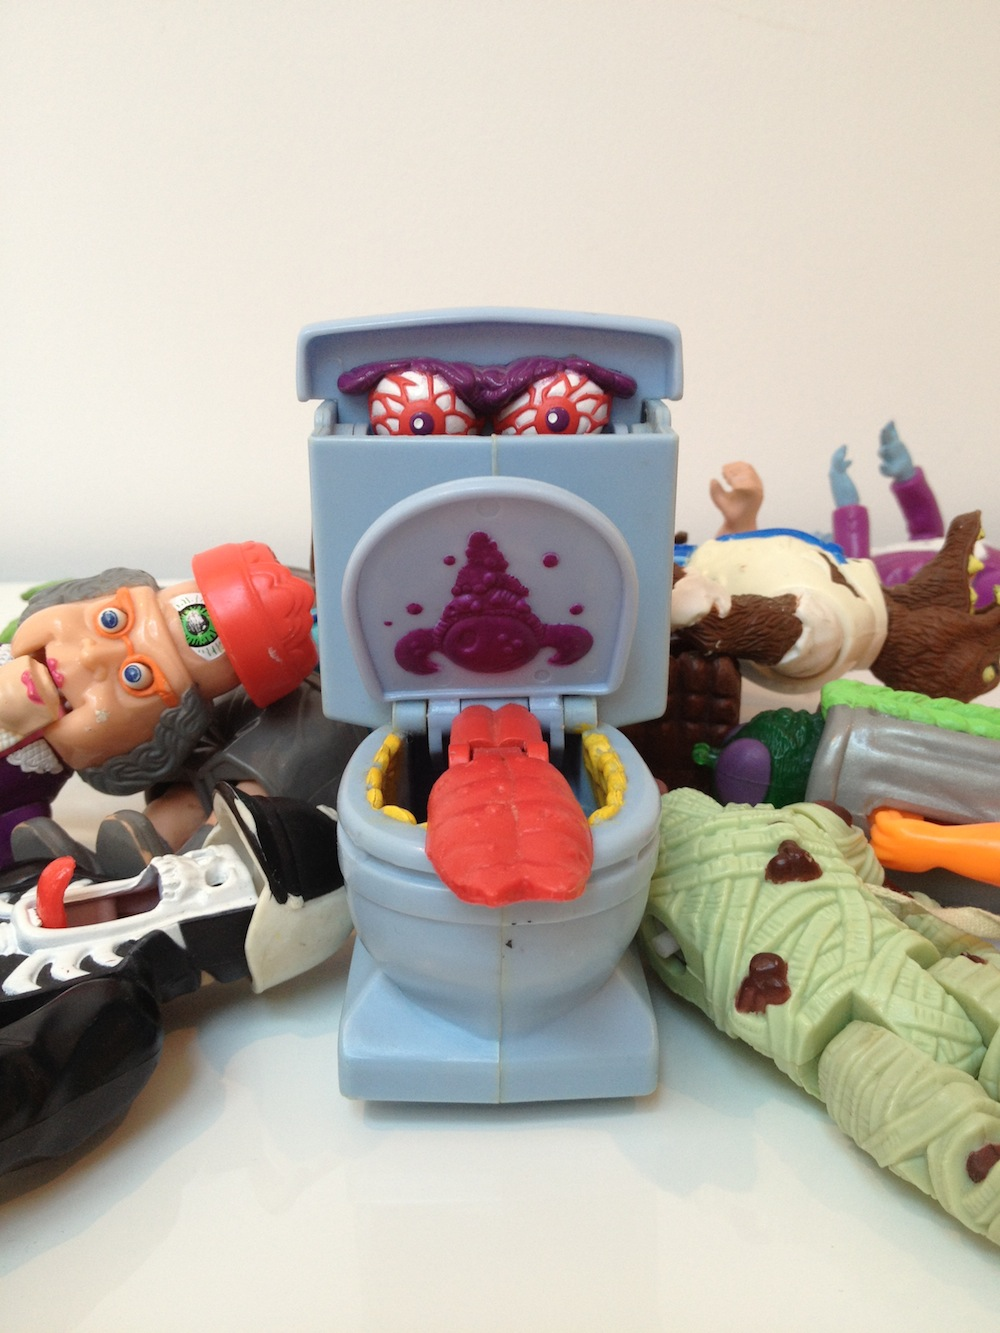 Vintage Toys From The 80s : Play vintage ghostbusters toys uberkid